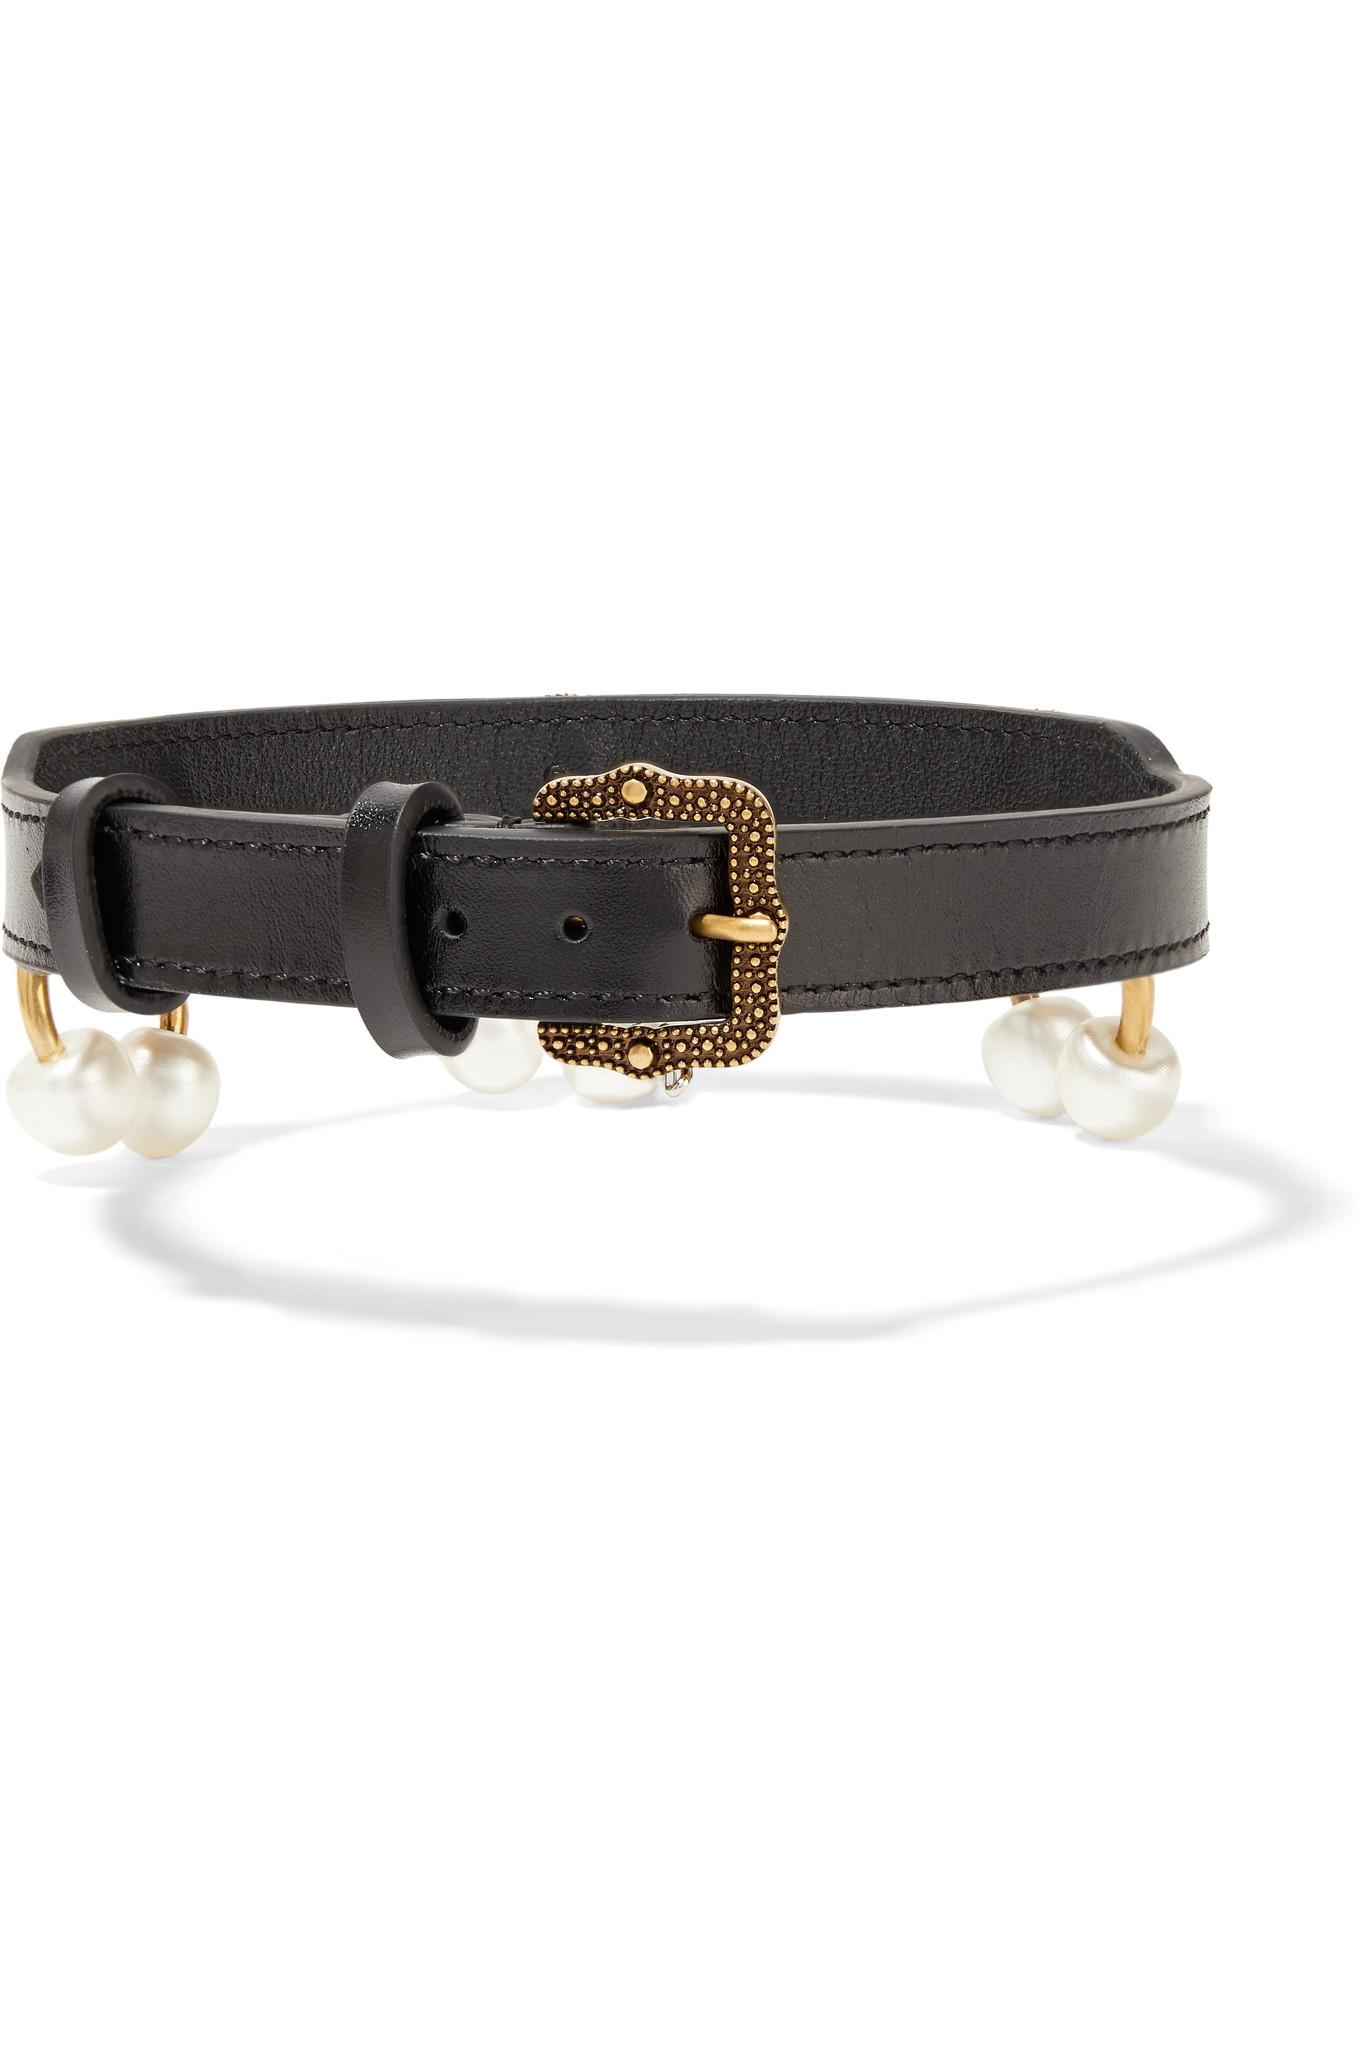 Leather, Gold-tone And Faux Pearl Choker - Black Gucci